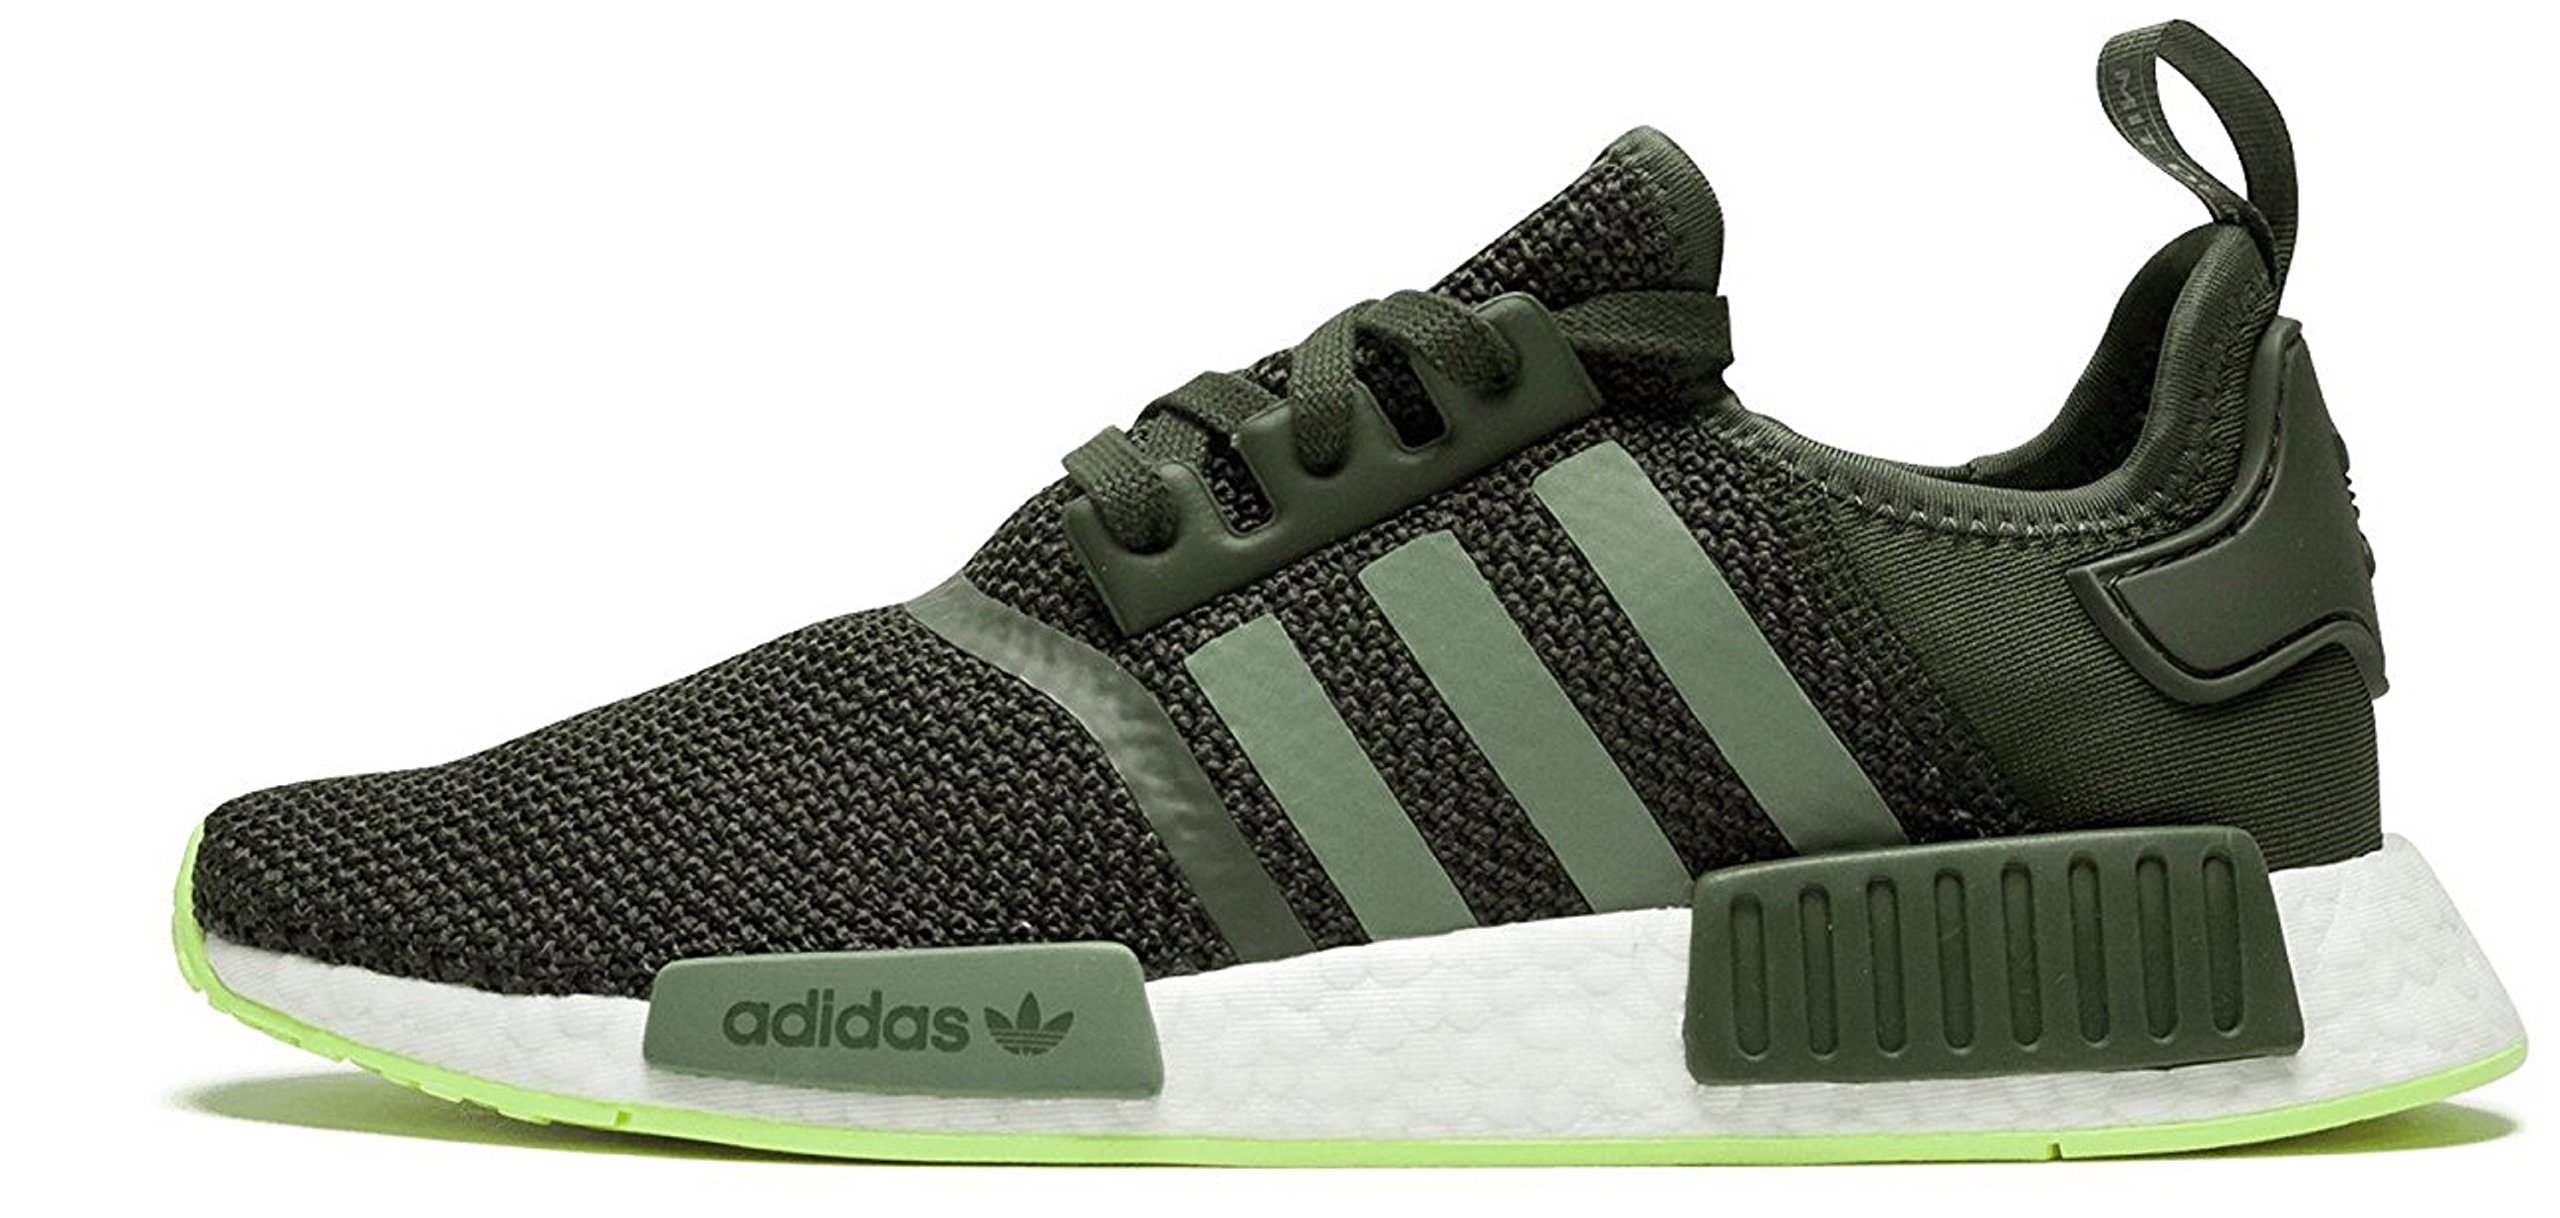 cheap for discount d9d79 c1bf9 Galleon - Adidas Mens NMD R1 Casual Sneakers,11.5 D(M) US, Night  CargoBase GreenSemi Frozen Yellow